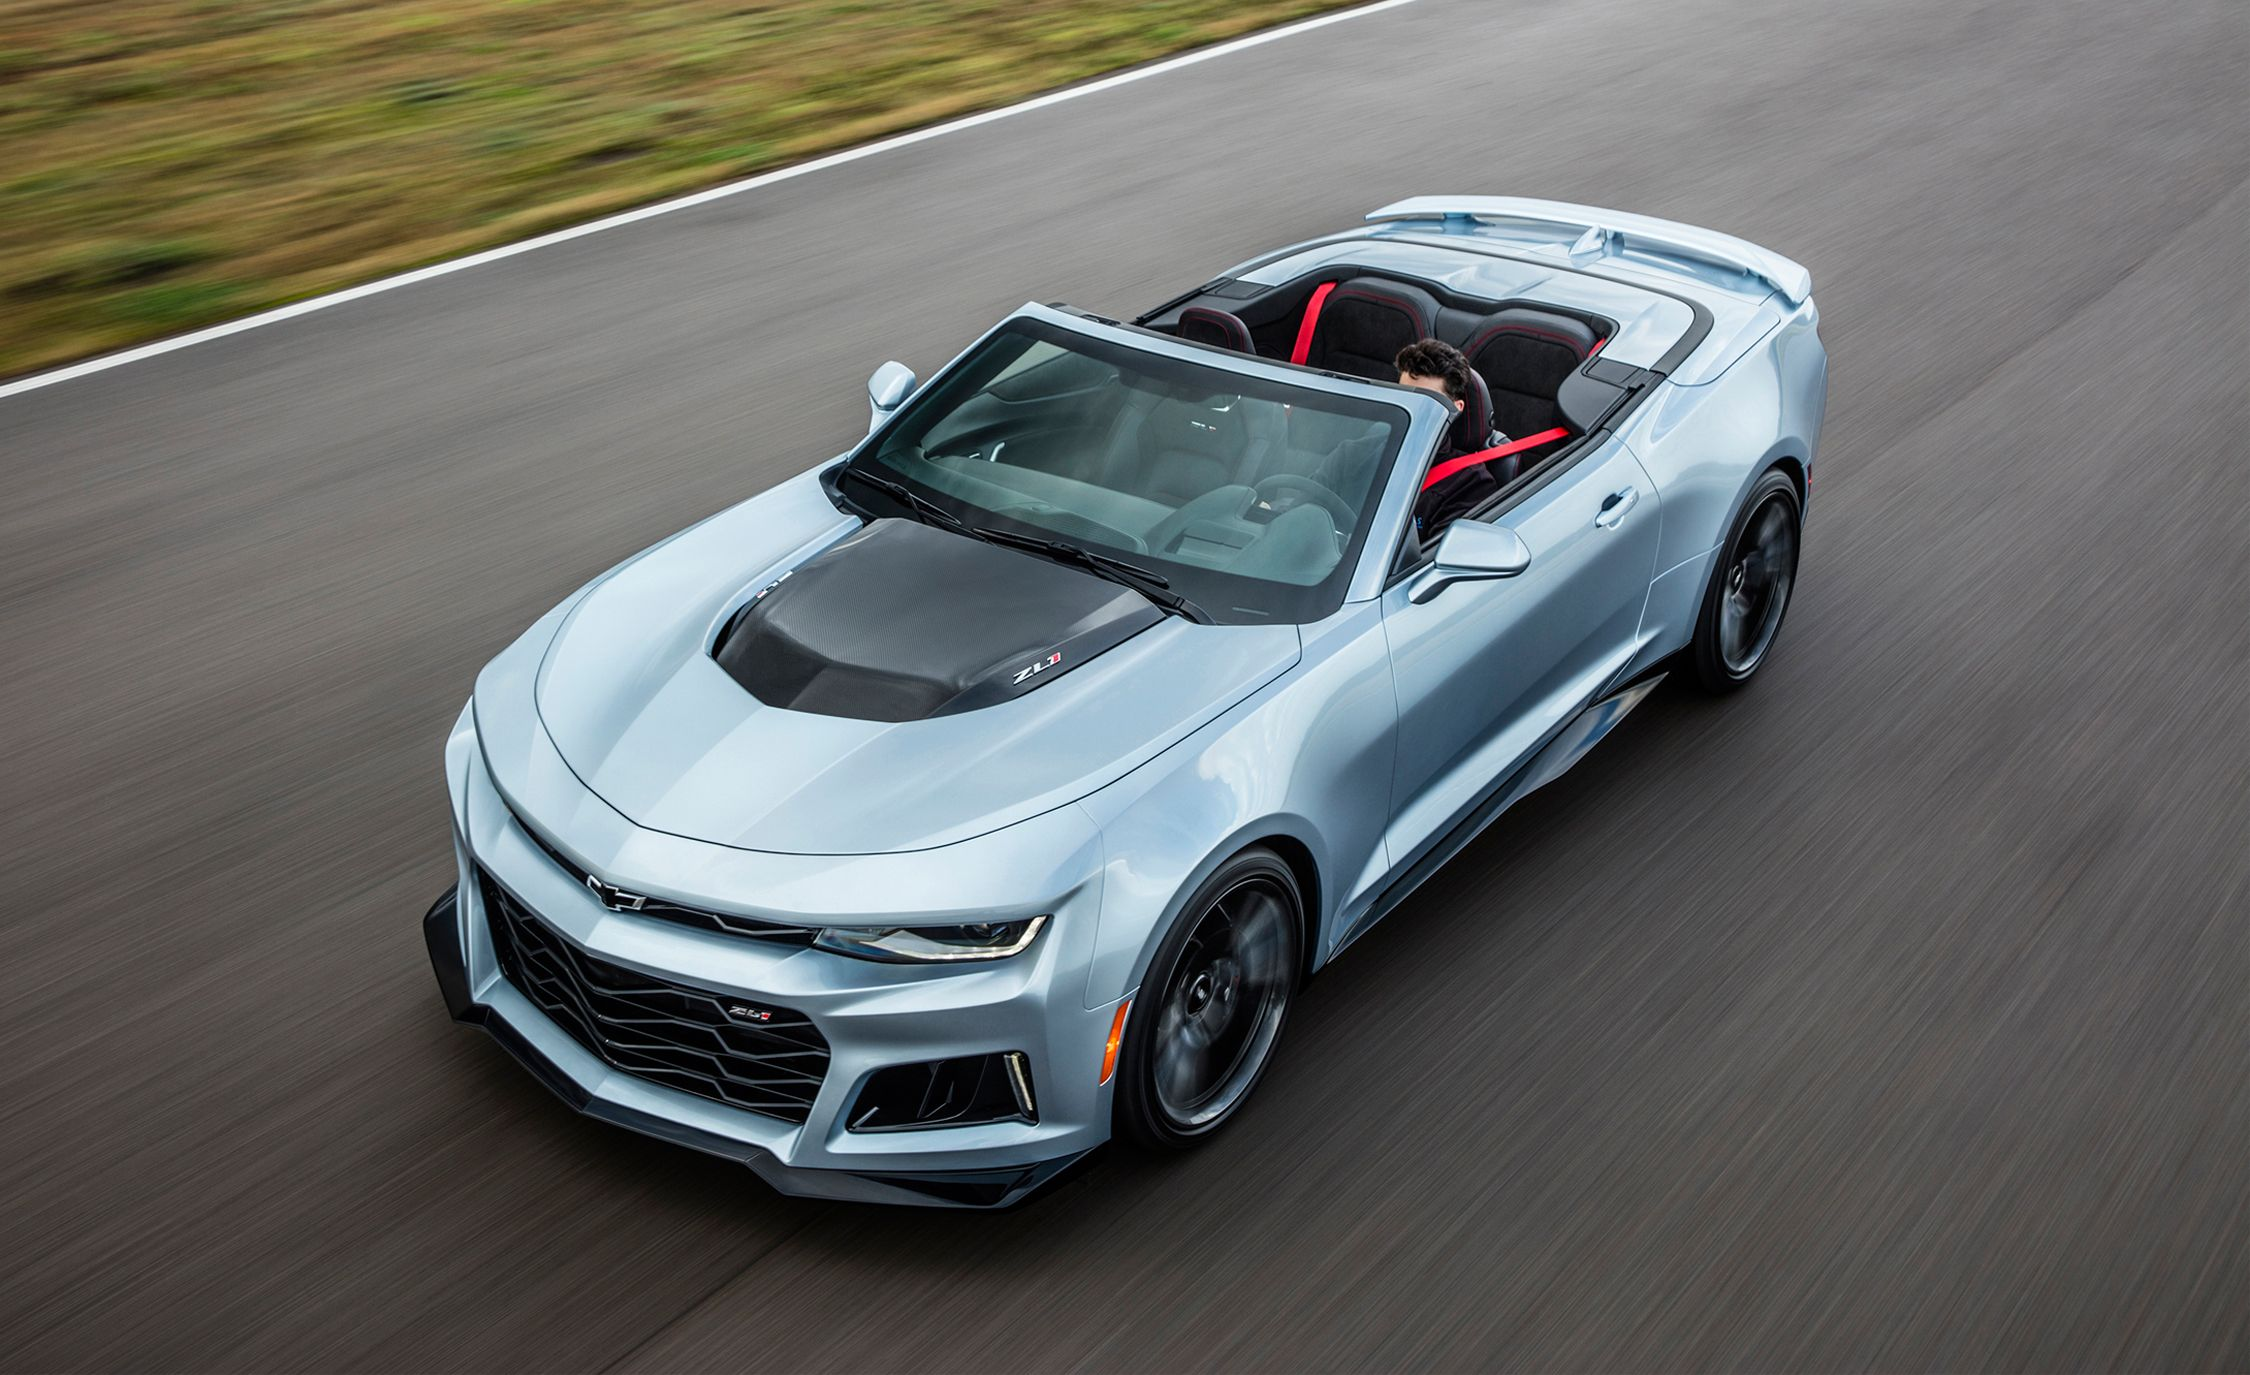 2017 chevrolet camaro zl1 convertible first drive review car and driver. Black Bedroom Furniture Sets. Home Design Ideas